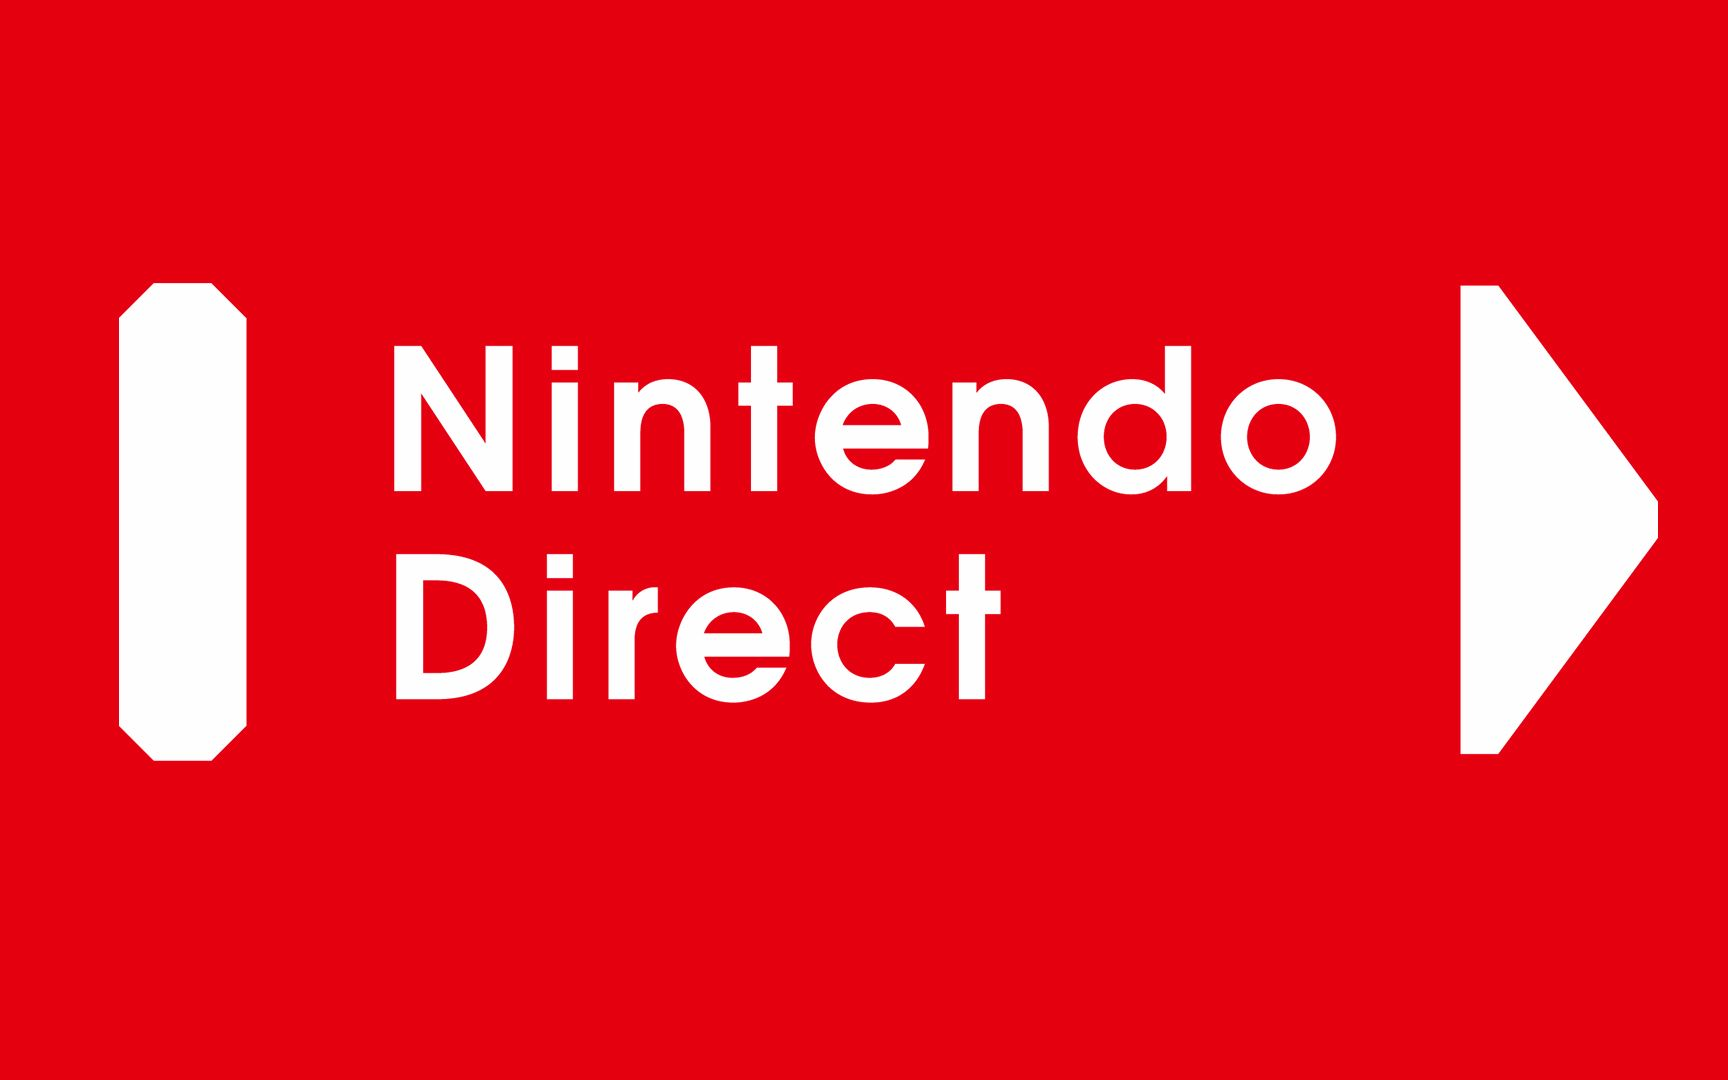 Se filtró la fecha para el Nintendo Direct sobre Super Smash Bros Ultimate